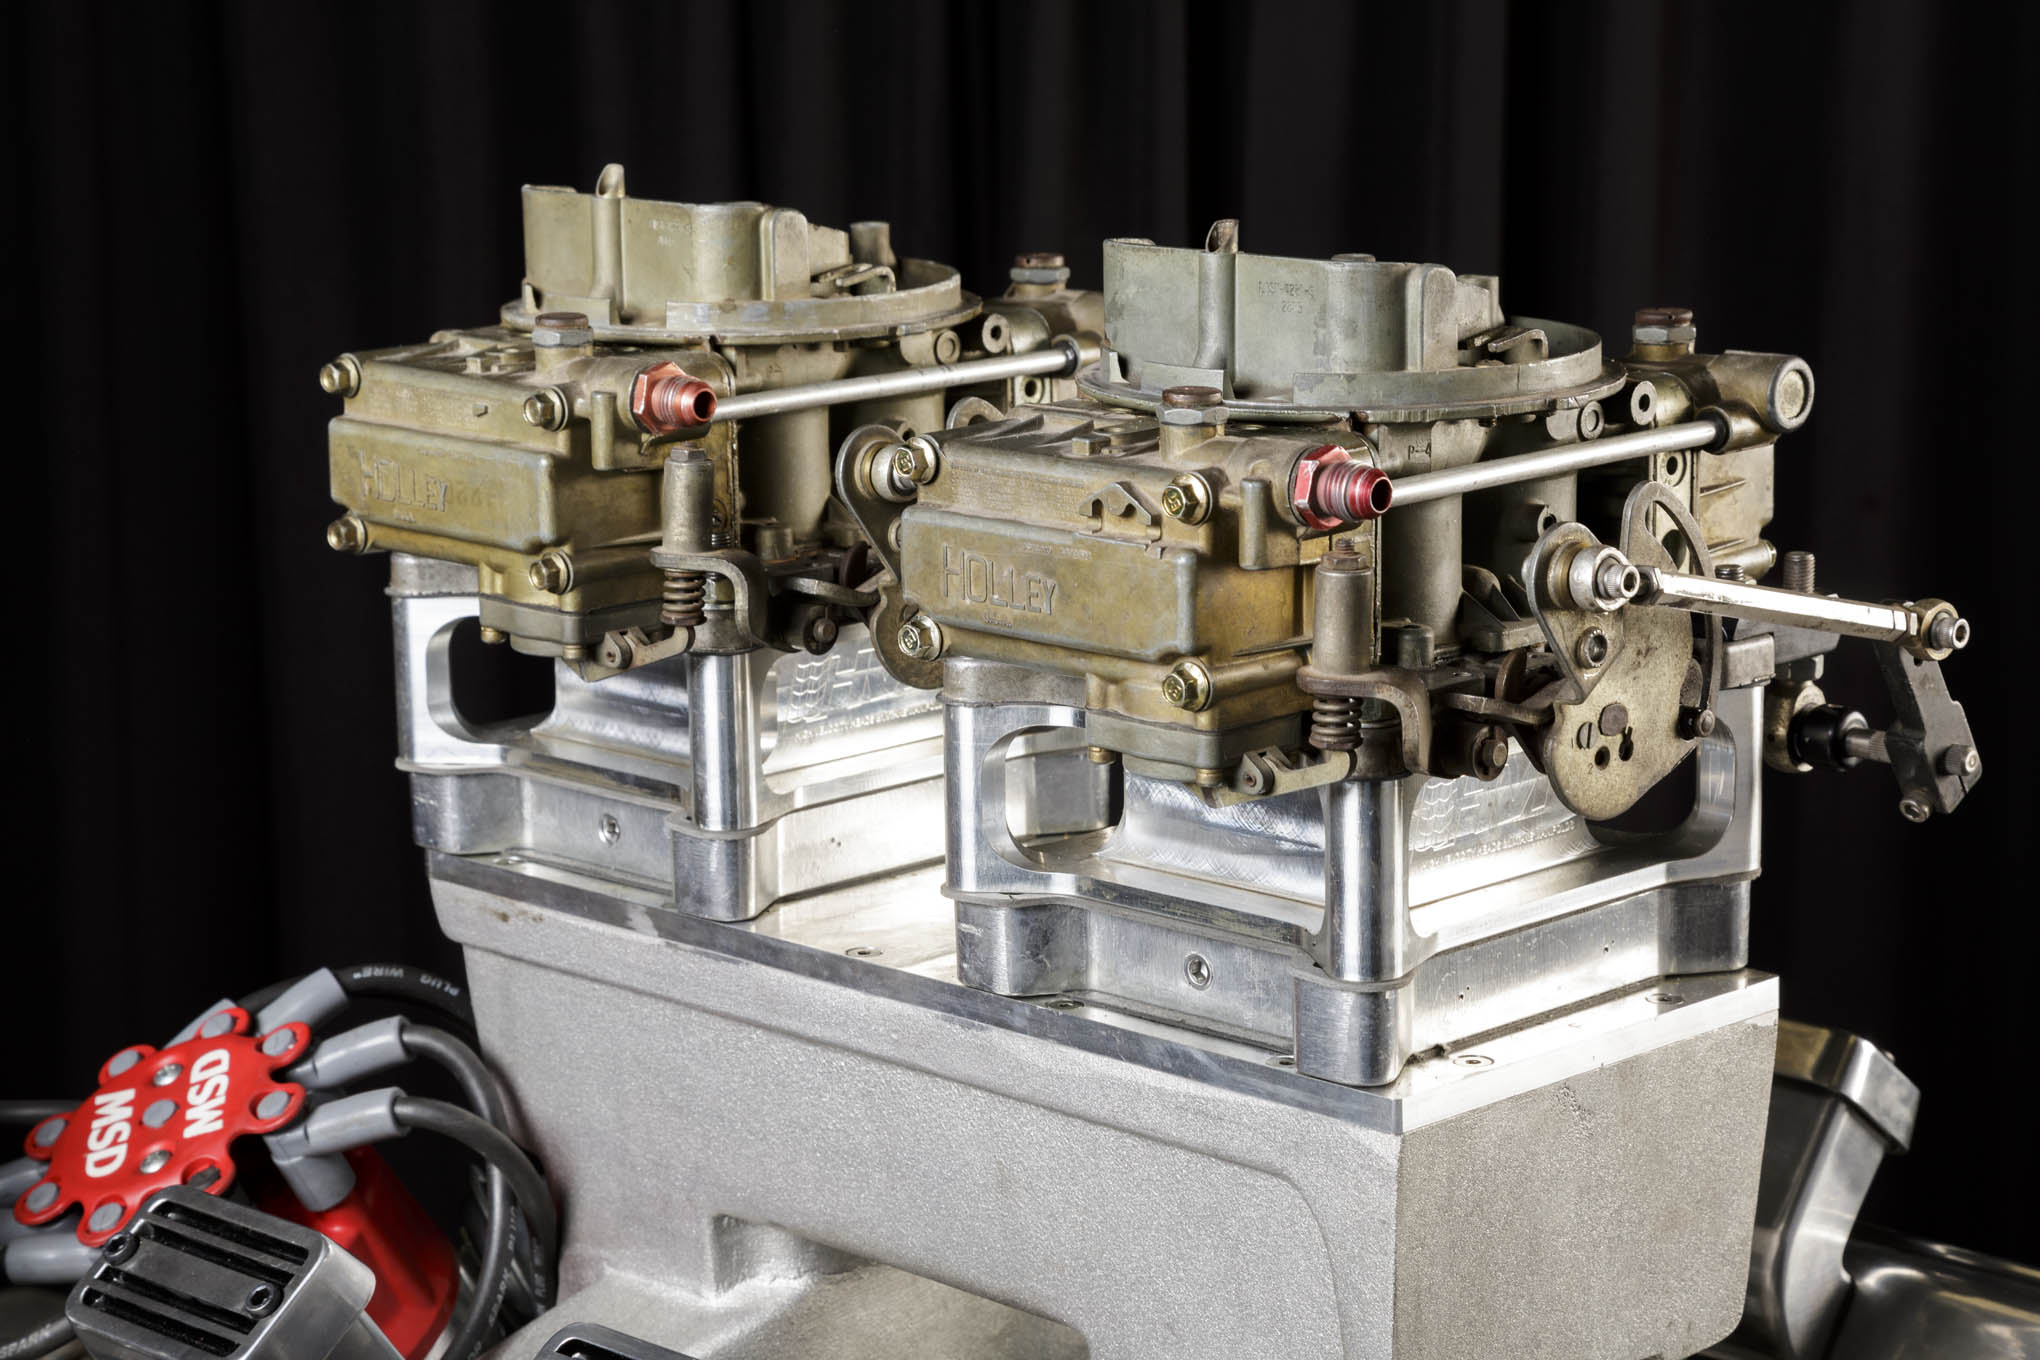 """Believe it or not, it was a set of old, 660cfm Holley center-squirters that were the magic ingredient for power. """"We were having trouble with carburetors, so we grabbed a pair of 40-year-old center-squirters. We just stuck 'em on there and Bingo,"""" said Eaton. While originally mounted inline, the carbs were turned sideways to facilitate jet changes during competition."""